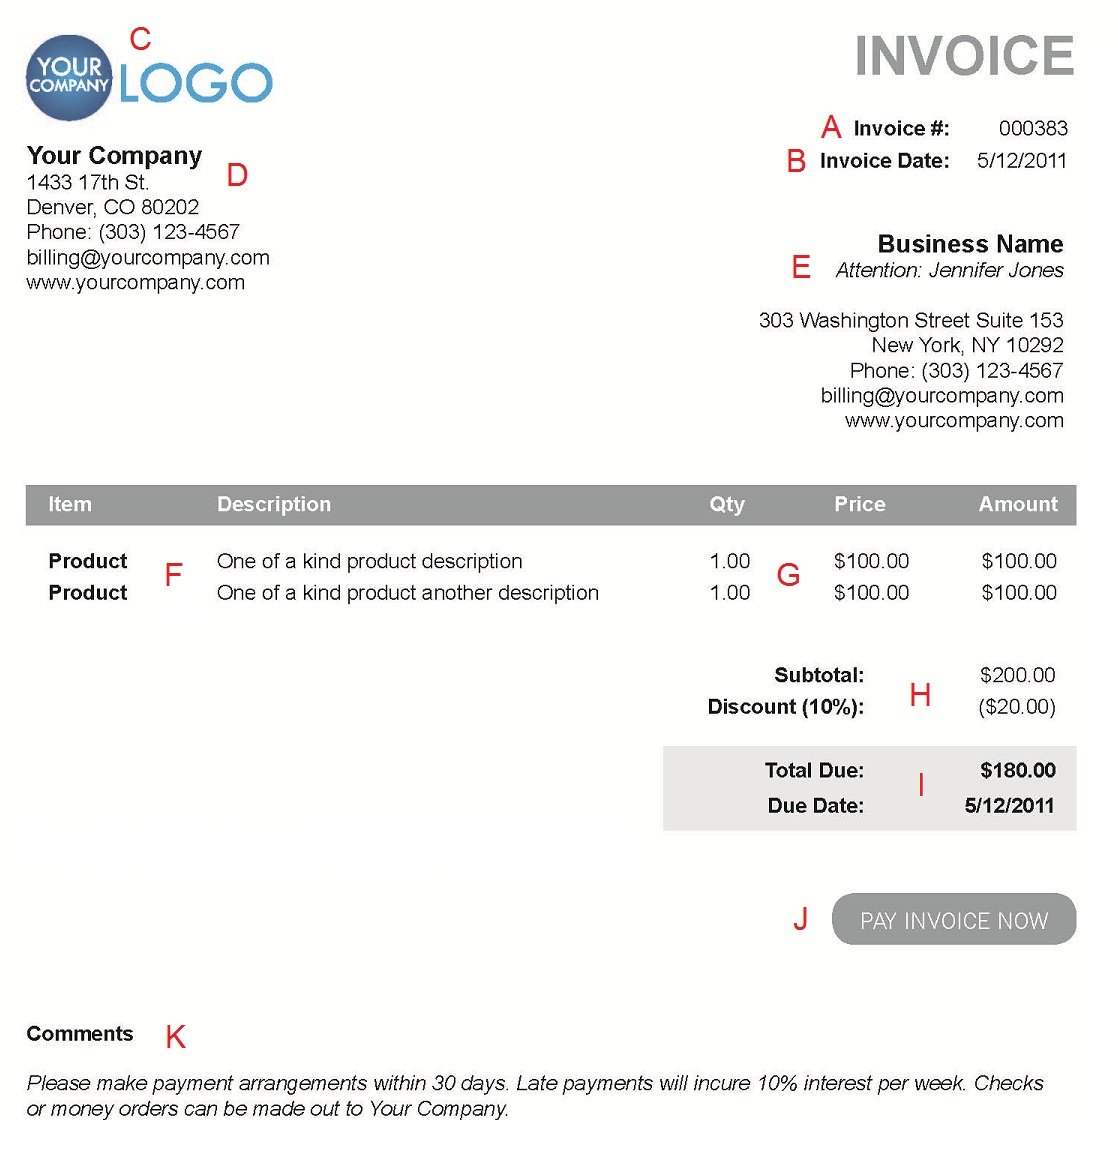 Atvingus  Winning The  Different Sections Of An Electronic Payment Invoice With Luxury A  With Breathtaking Download Invoice Templates Also Receipt Organizer In Addition Receipt Template Word And Rent Receipt As Well As Army Hand Receipt Additionally How To Spell Receipt From Paysimplecom With Atvingus  Luxury The  Different Sections Of An Electronic Payment Invoice With Breathtaking A  And Winning Download Invoice Templates Also Receipt Organizer In Addition Receipt Template Word From Paysimplecom